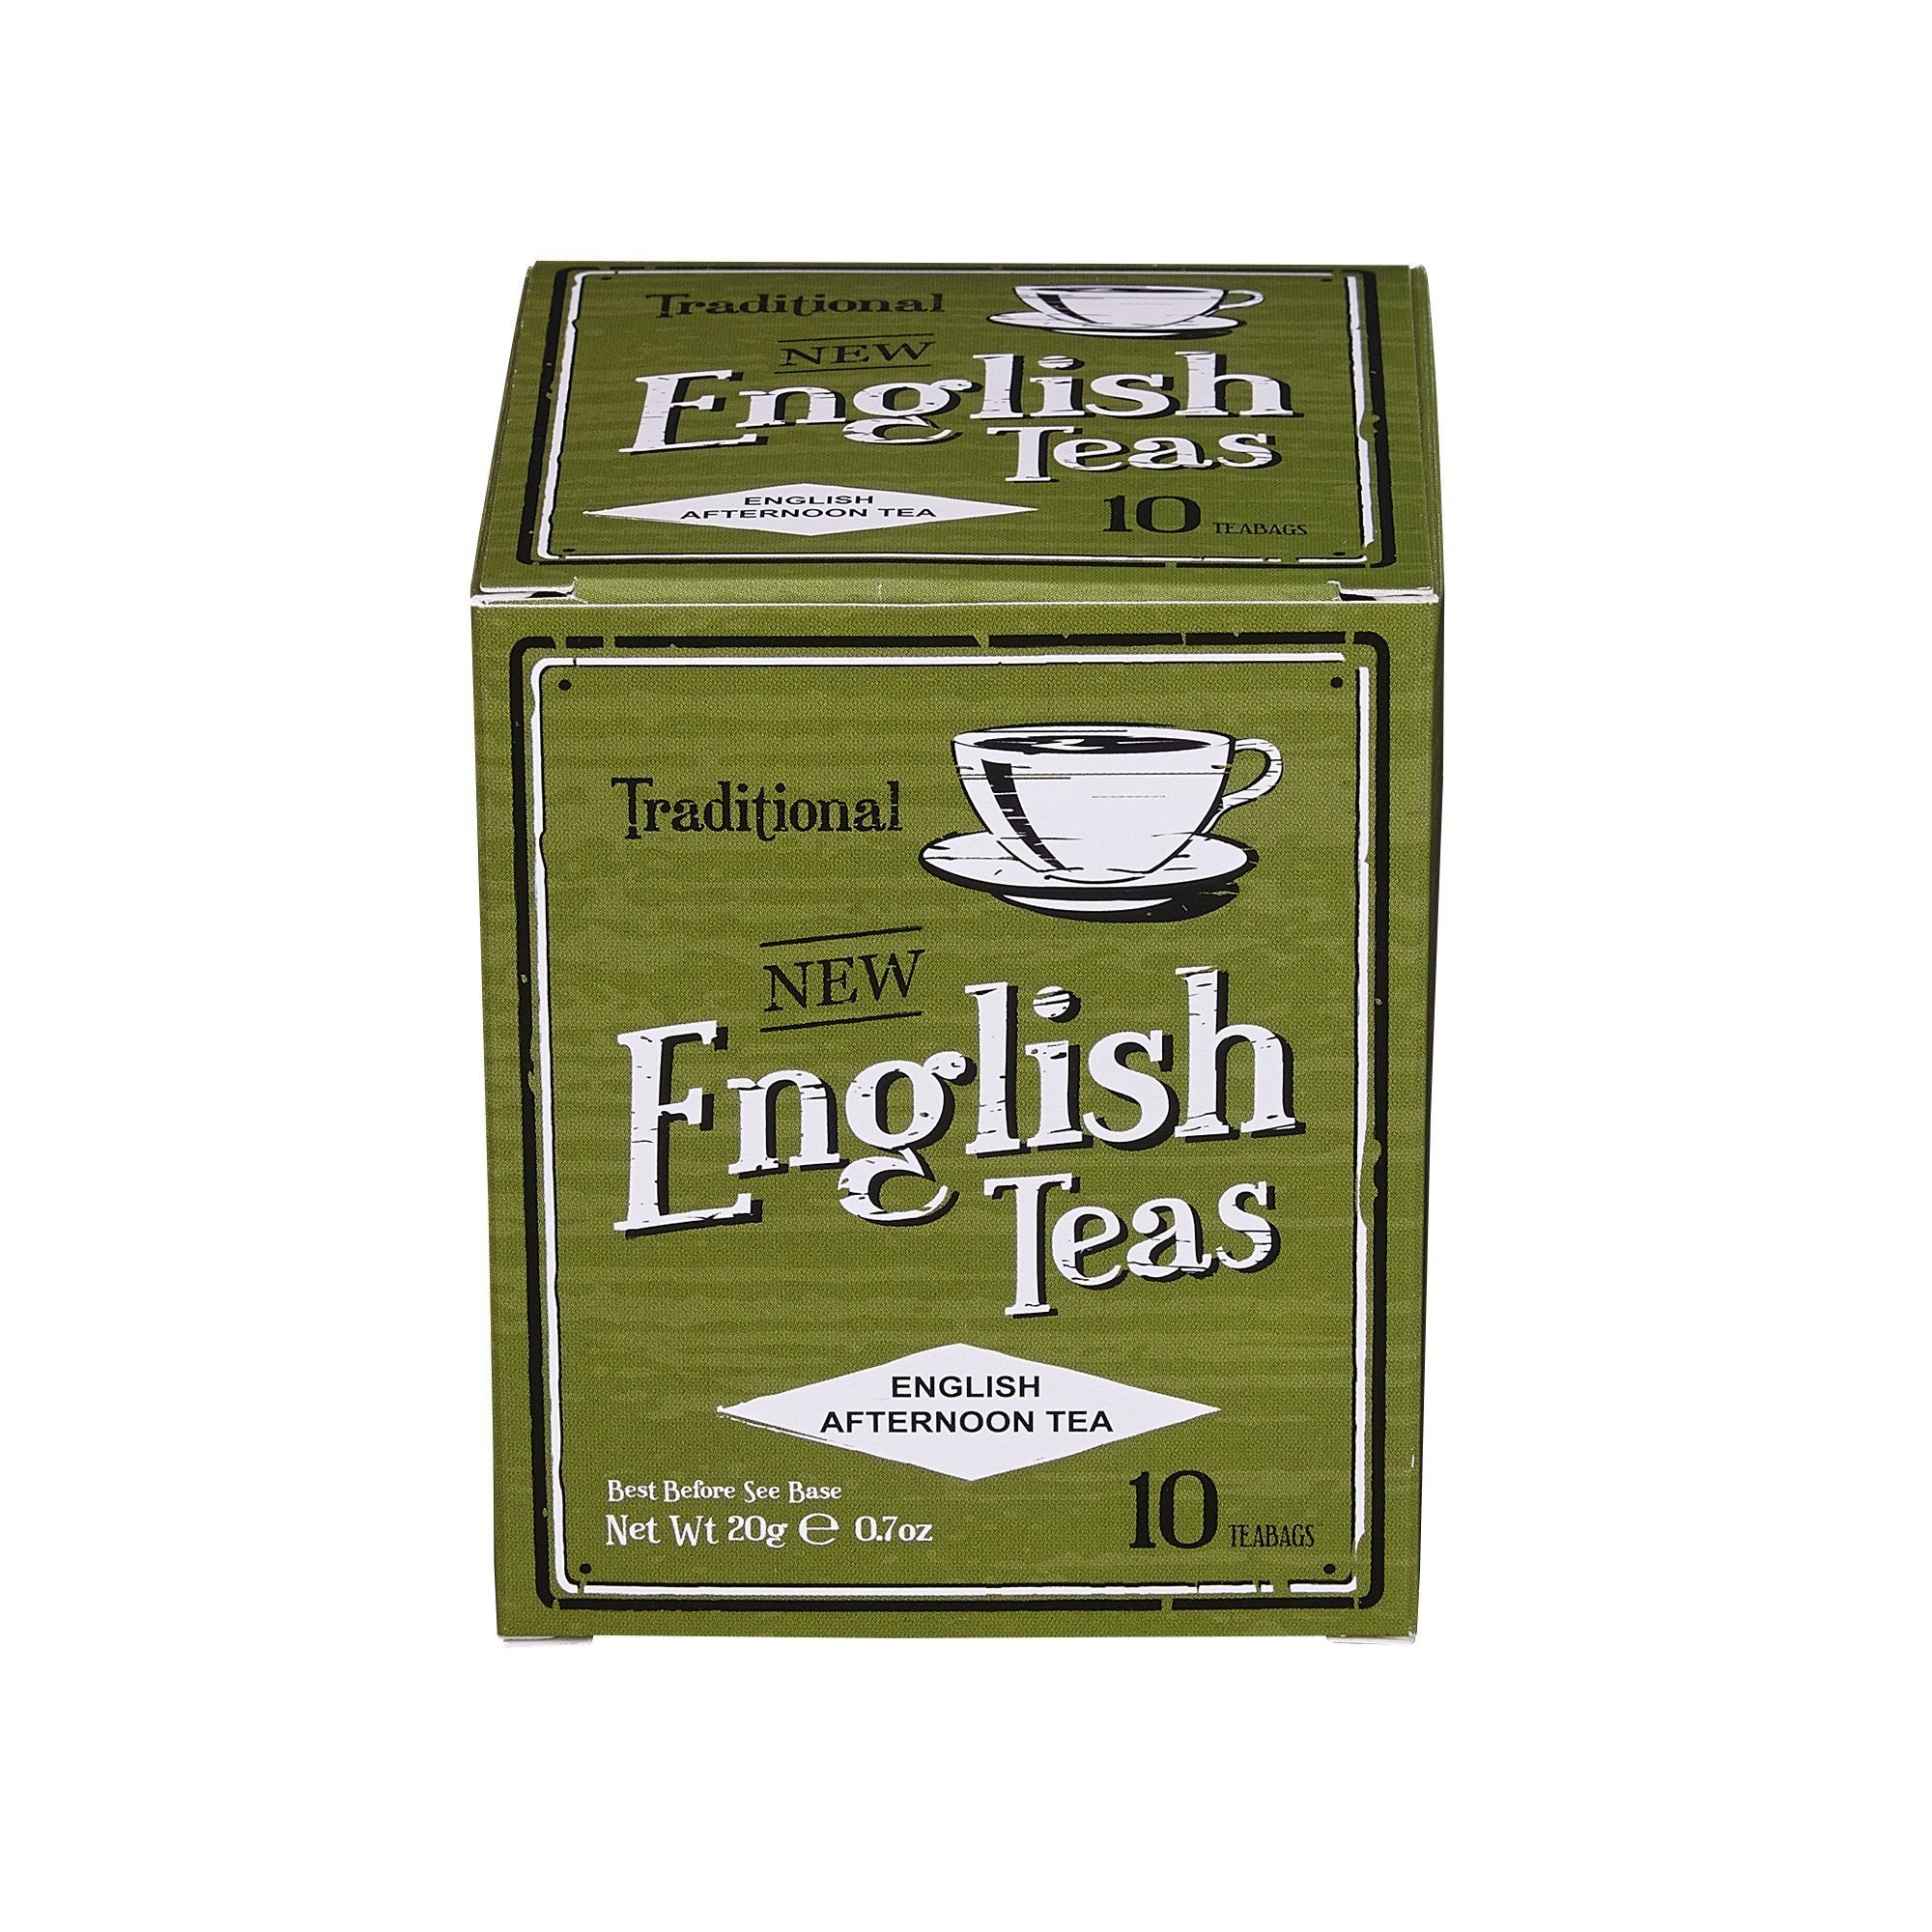 Vintage English Afternoon Tea 10 Teabag Carton Black Tea New English Teas